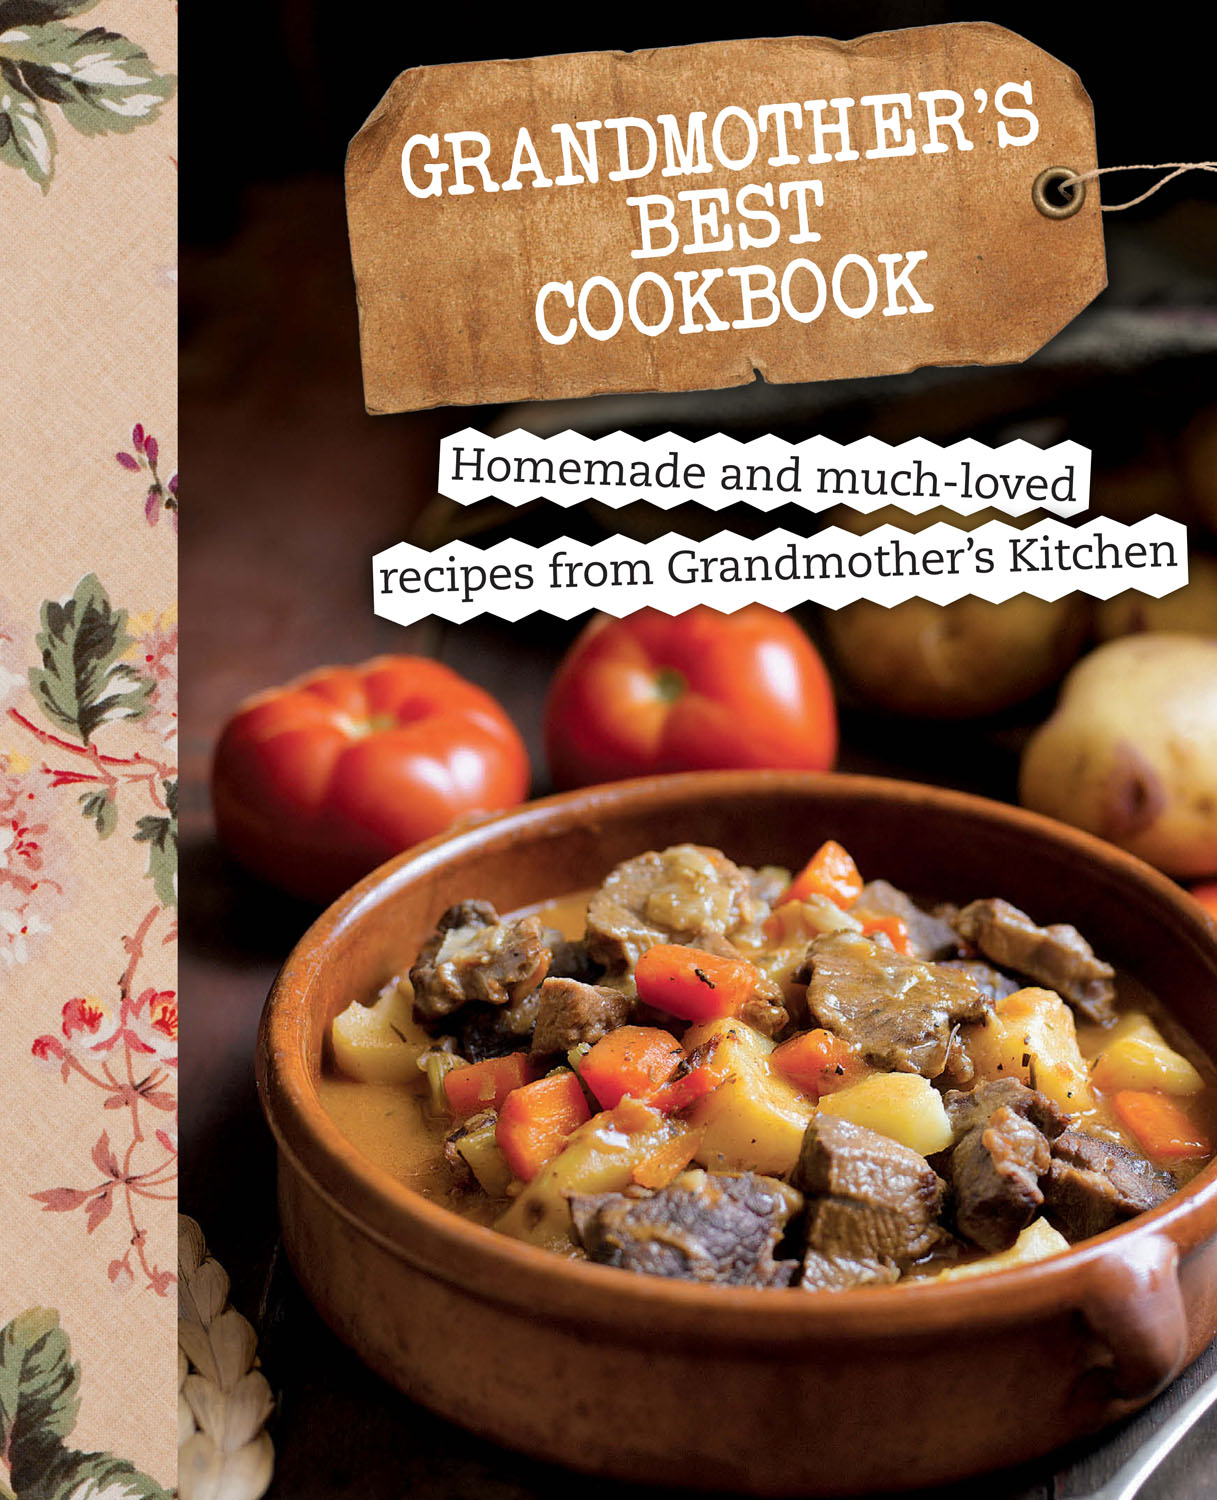 Grandmother's Best Cookbook (Love Food)